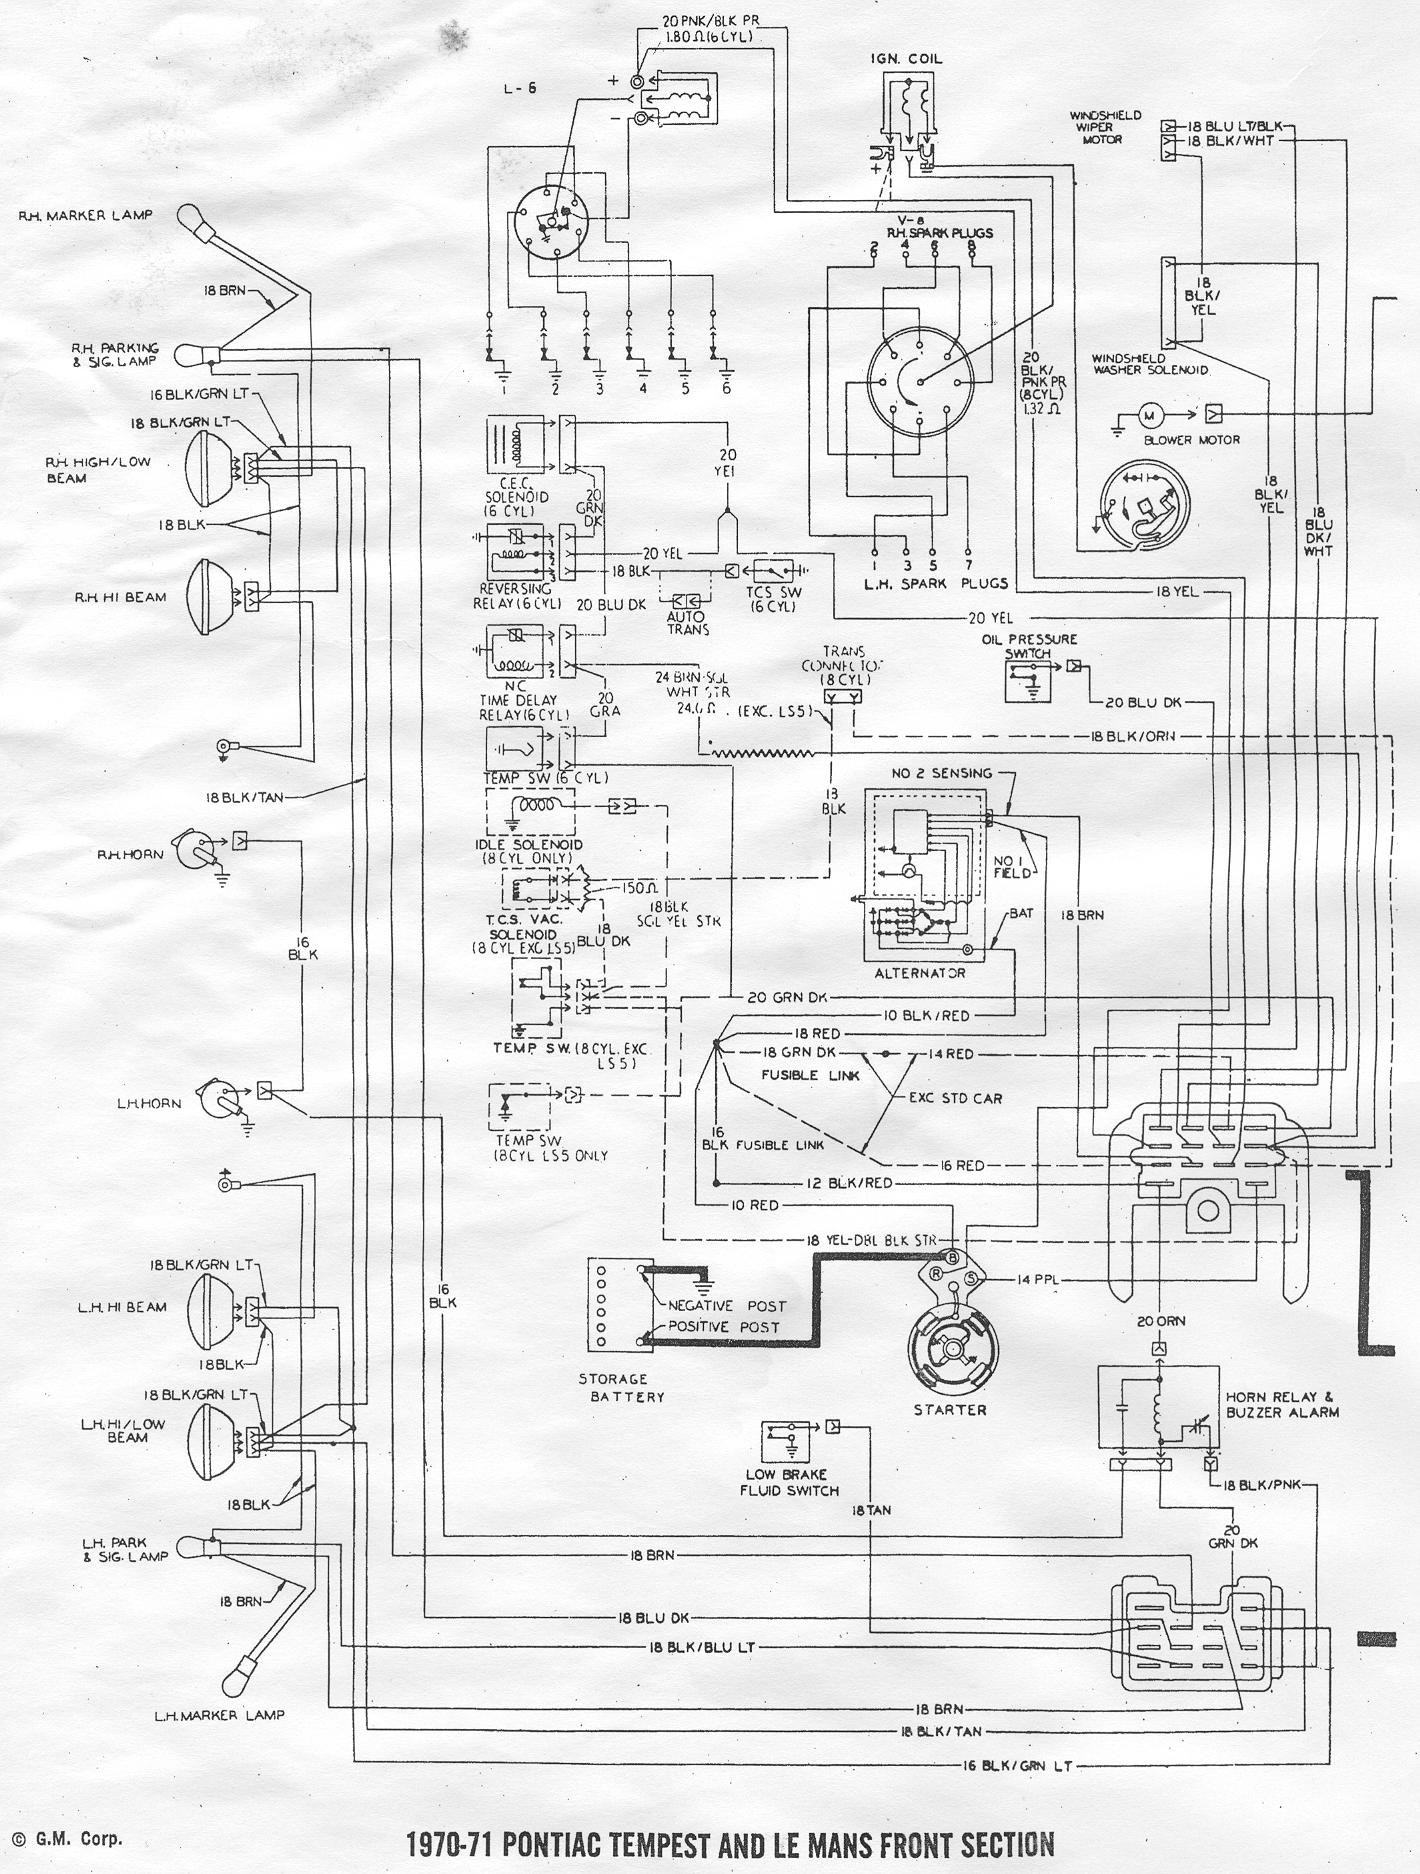 Harley Davidson Wiring Diagram on 1981 toyota wiring diagram, 1981 dodge wiring diagram, 1981 club car wiring diagram,